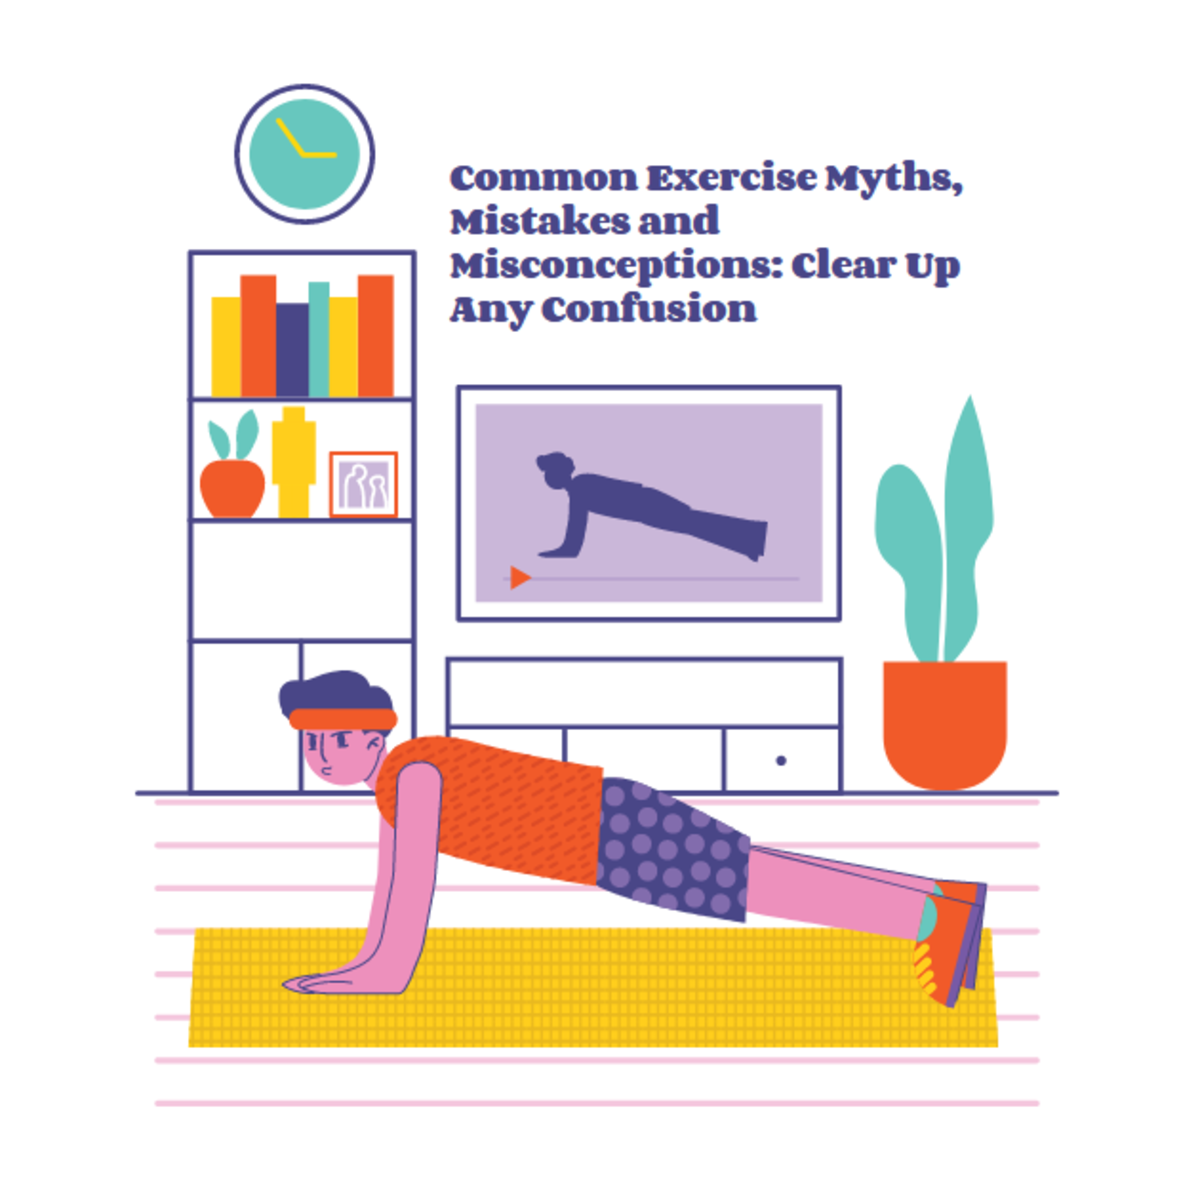 Common Exercise Myths, Mistakes and Misconceptions: Clear Up Any Confusion